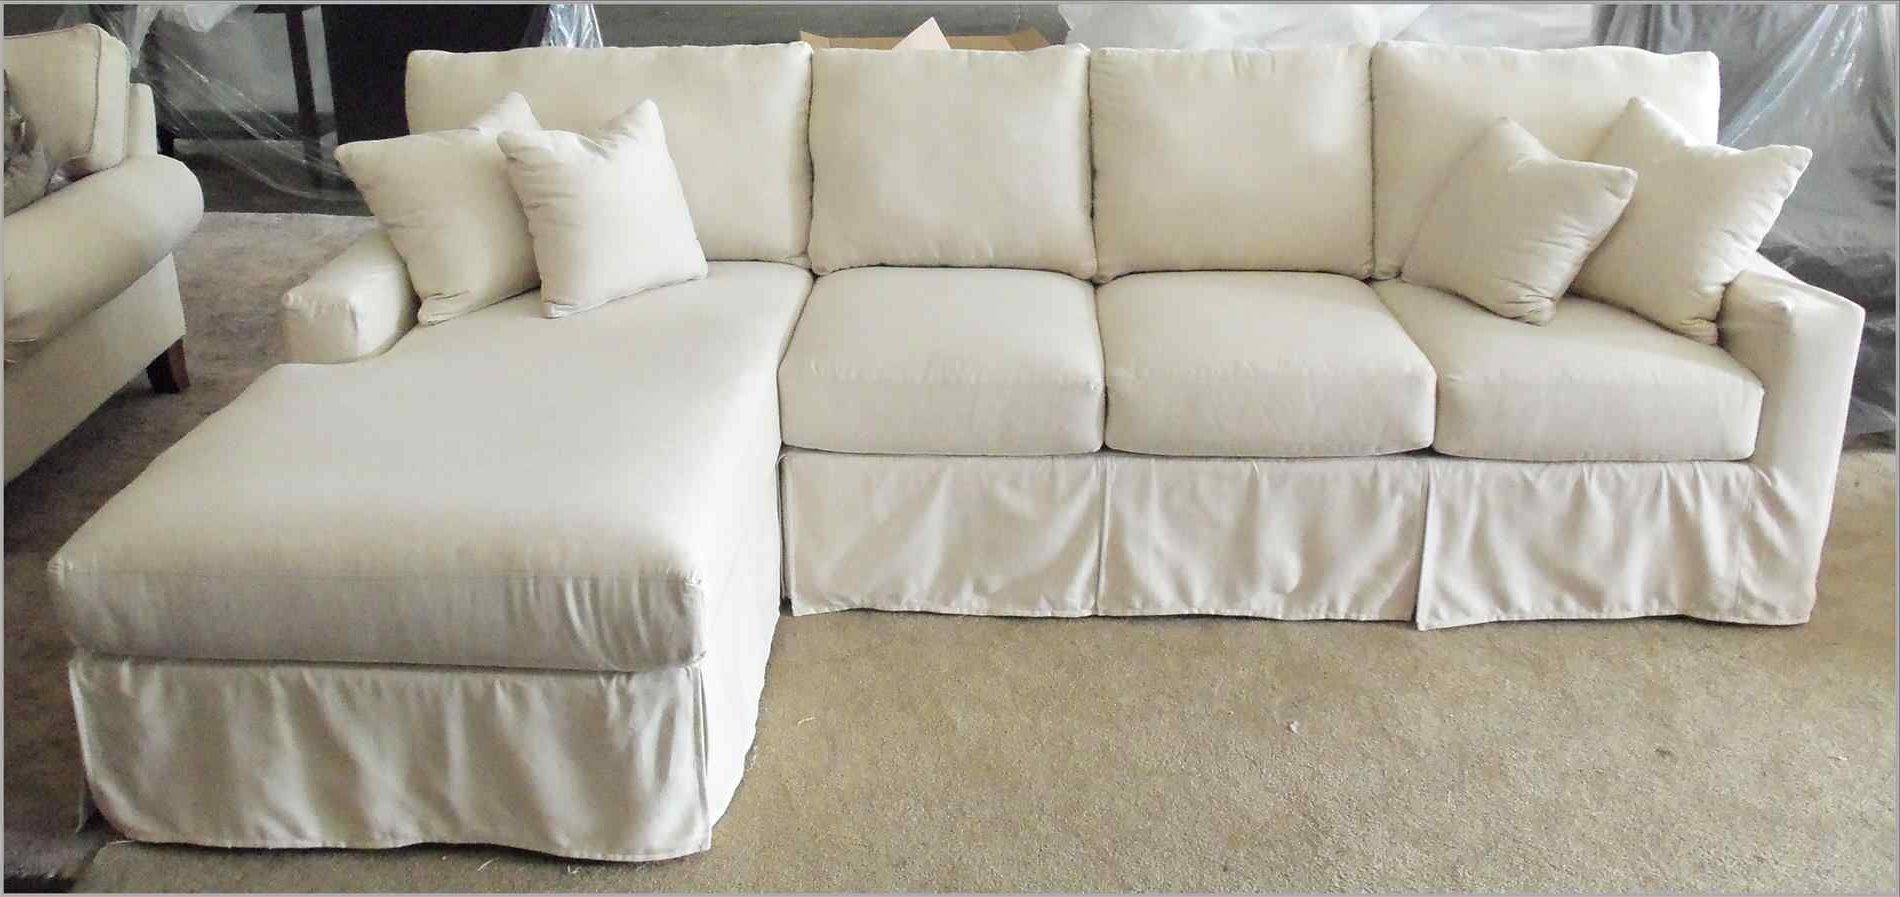 Slipcovers For Sectional Sofa With Chaise Within Latest Sofa With Chaise Slipcover – Amazing Furniture, Interior And Home (View 11 of 15)